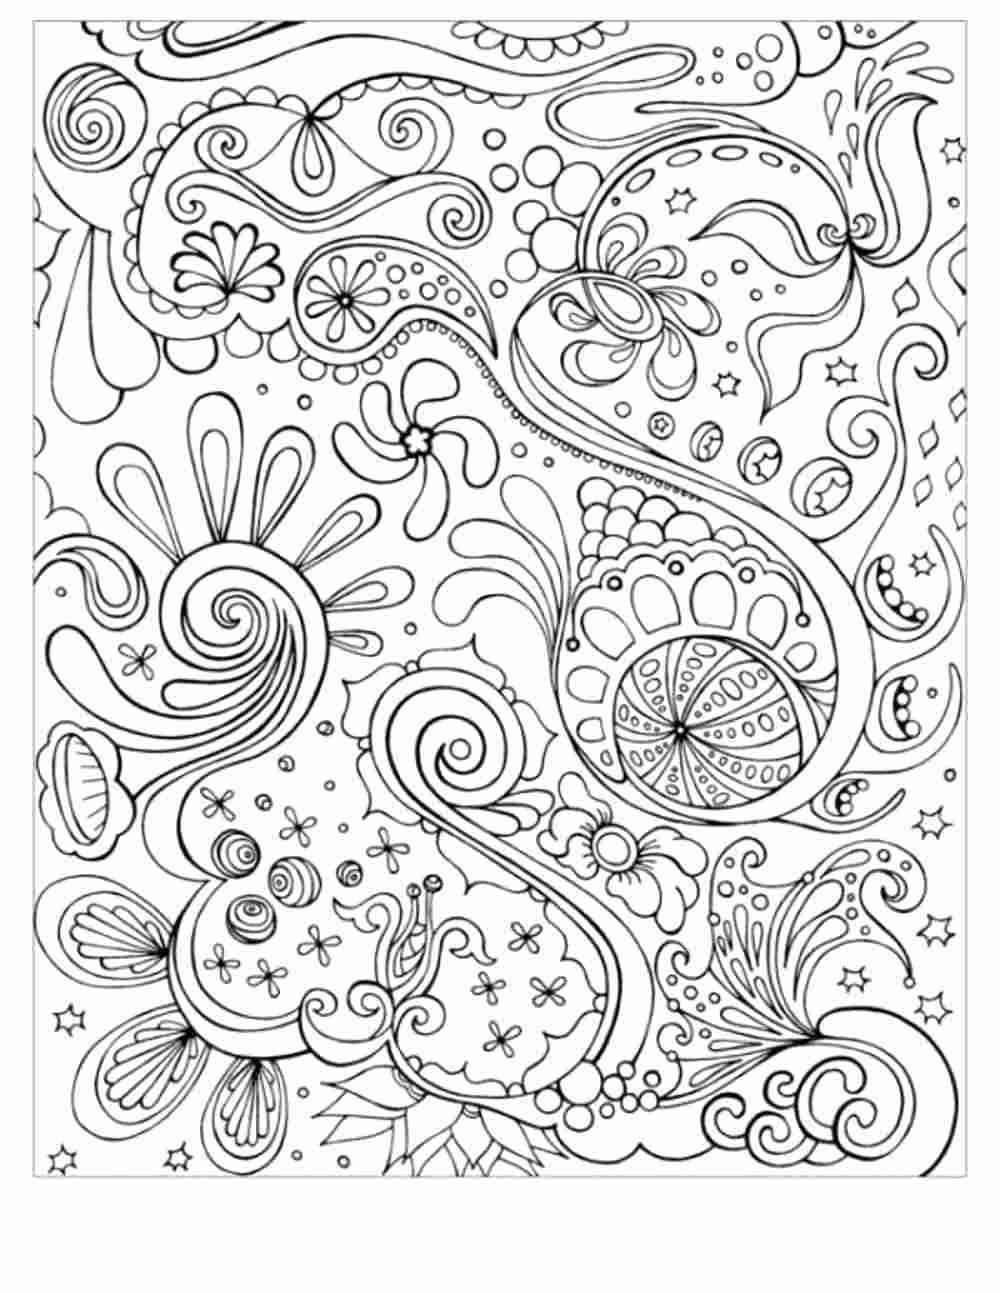 Abstract Coloring Pages Line Mapiraj Collection Of Stress Relief Coloring Pages Animals Funny Coloring Pages Printable